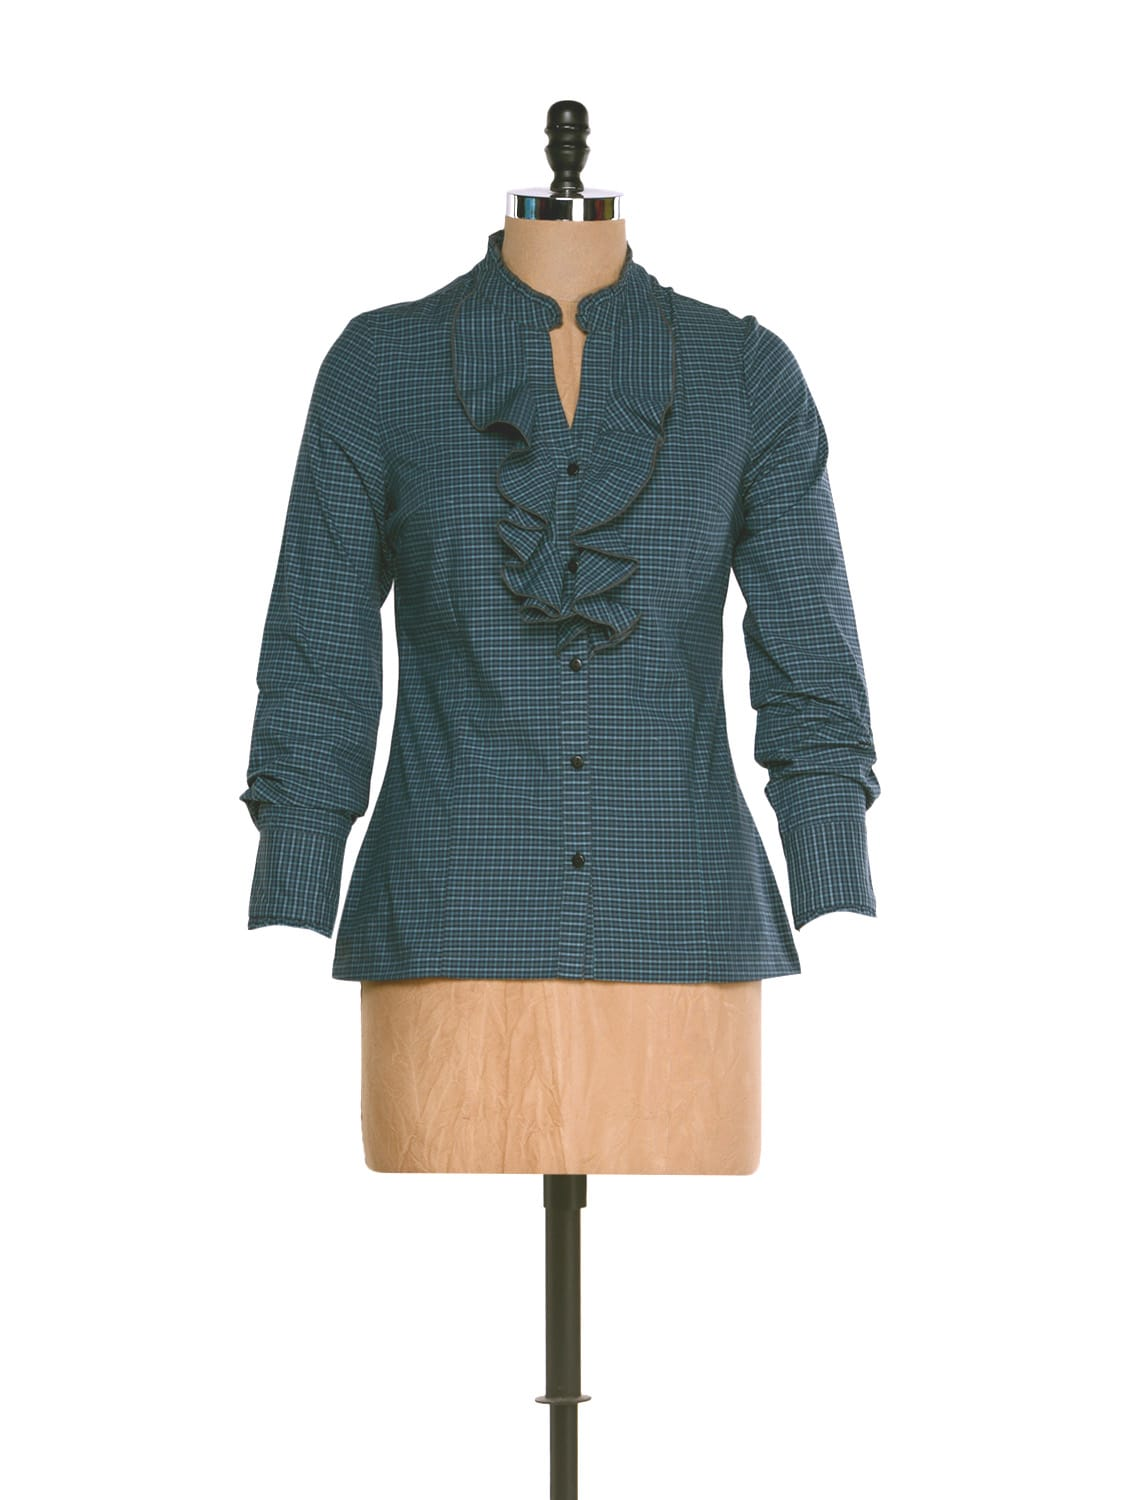 Blue Check Print Formal Shirt With A Frilled Neck - Kaaryah